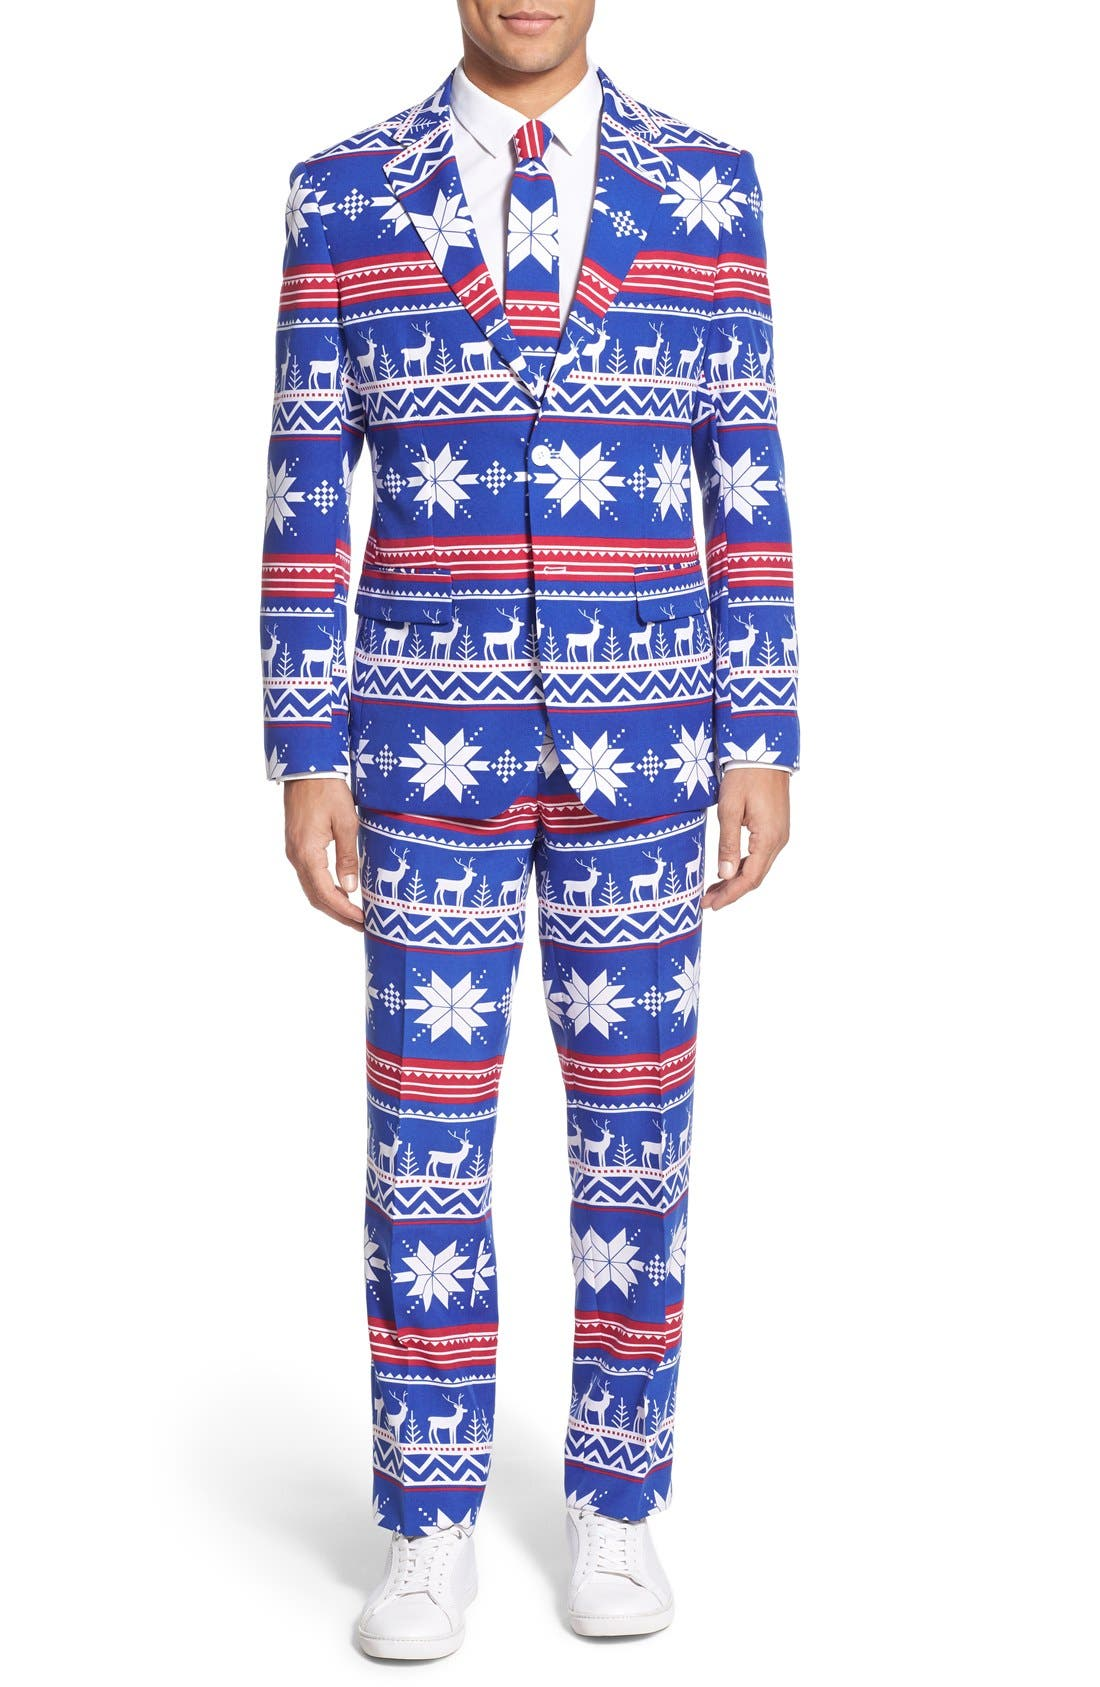 'Rudolph' Holiday Suit & Tie,                             Main thumbnail 1, color,                             400